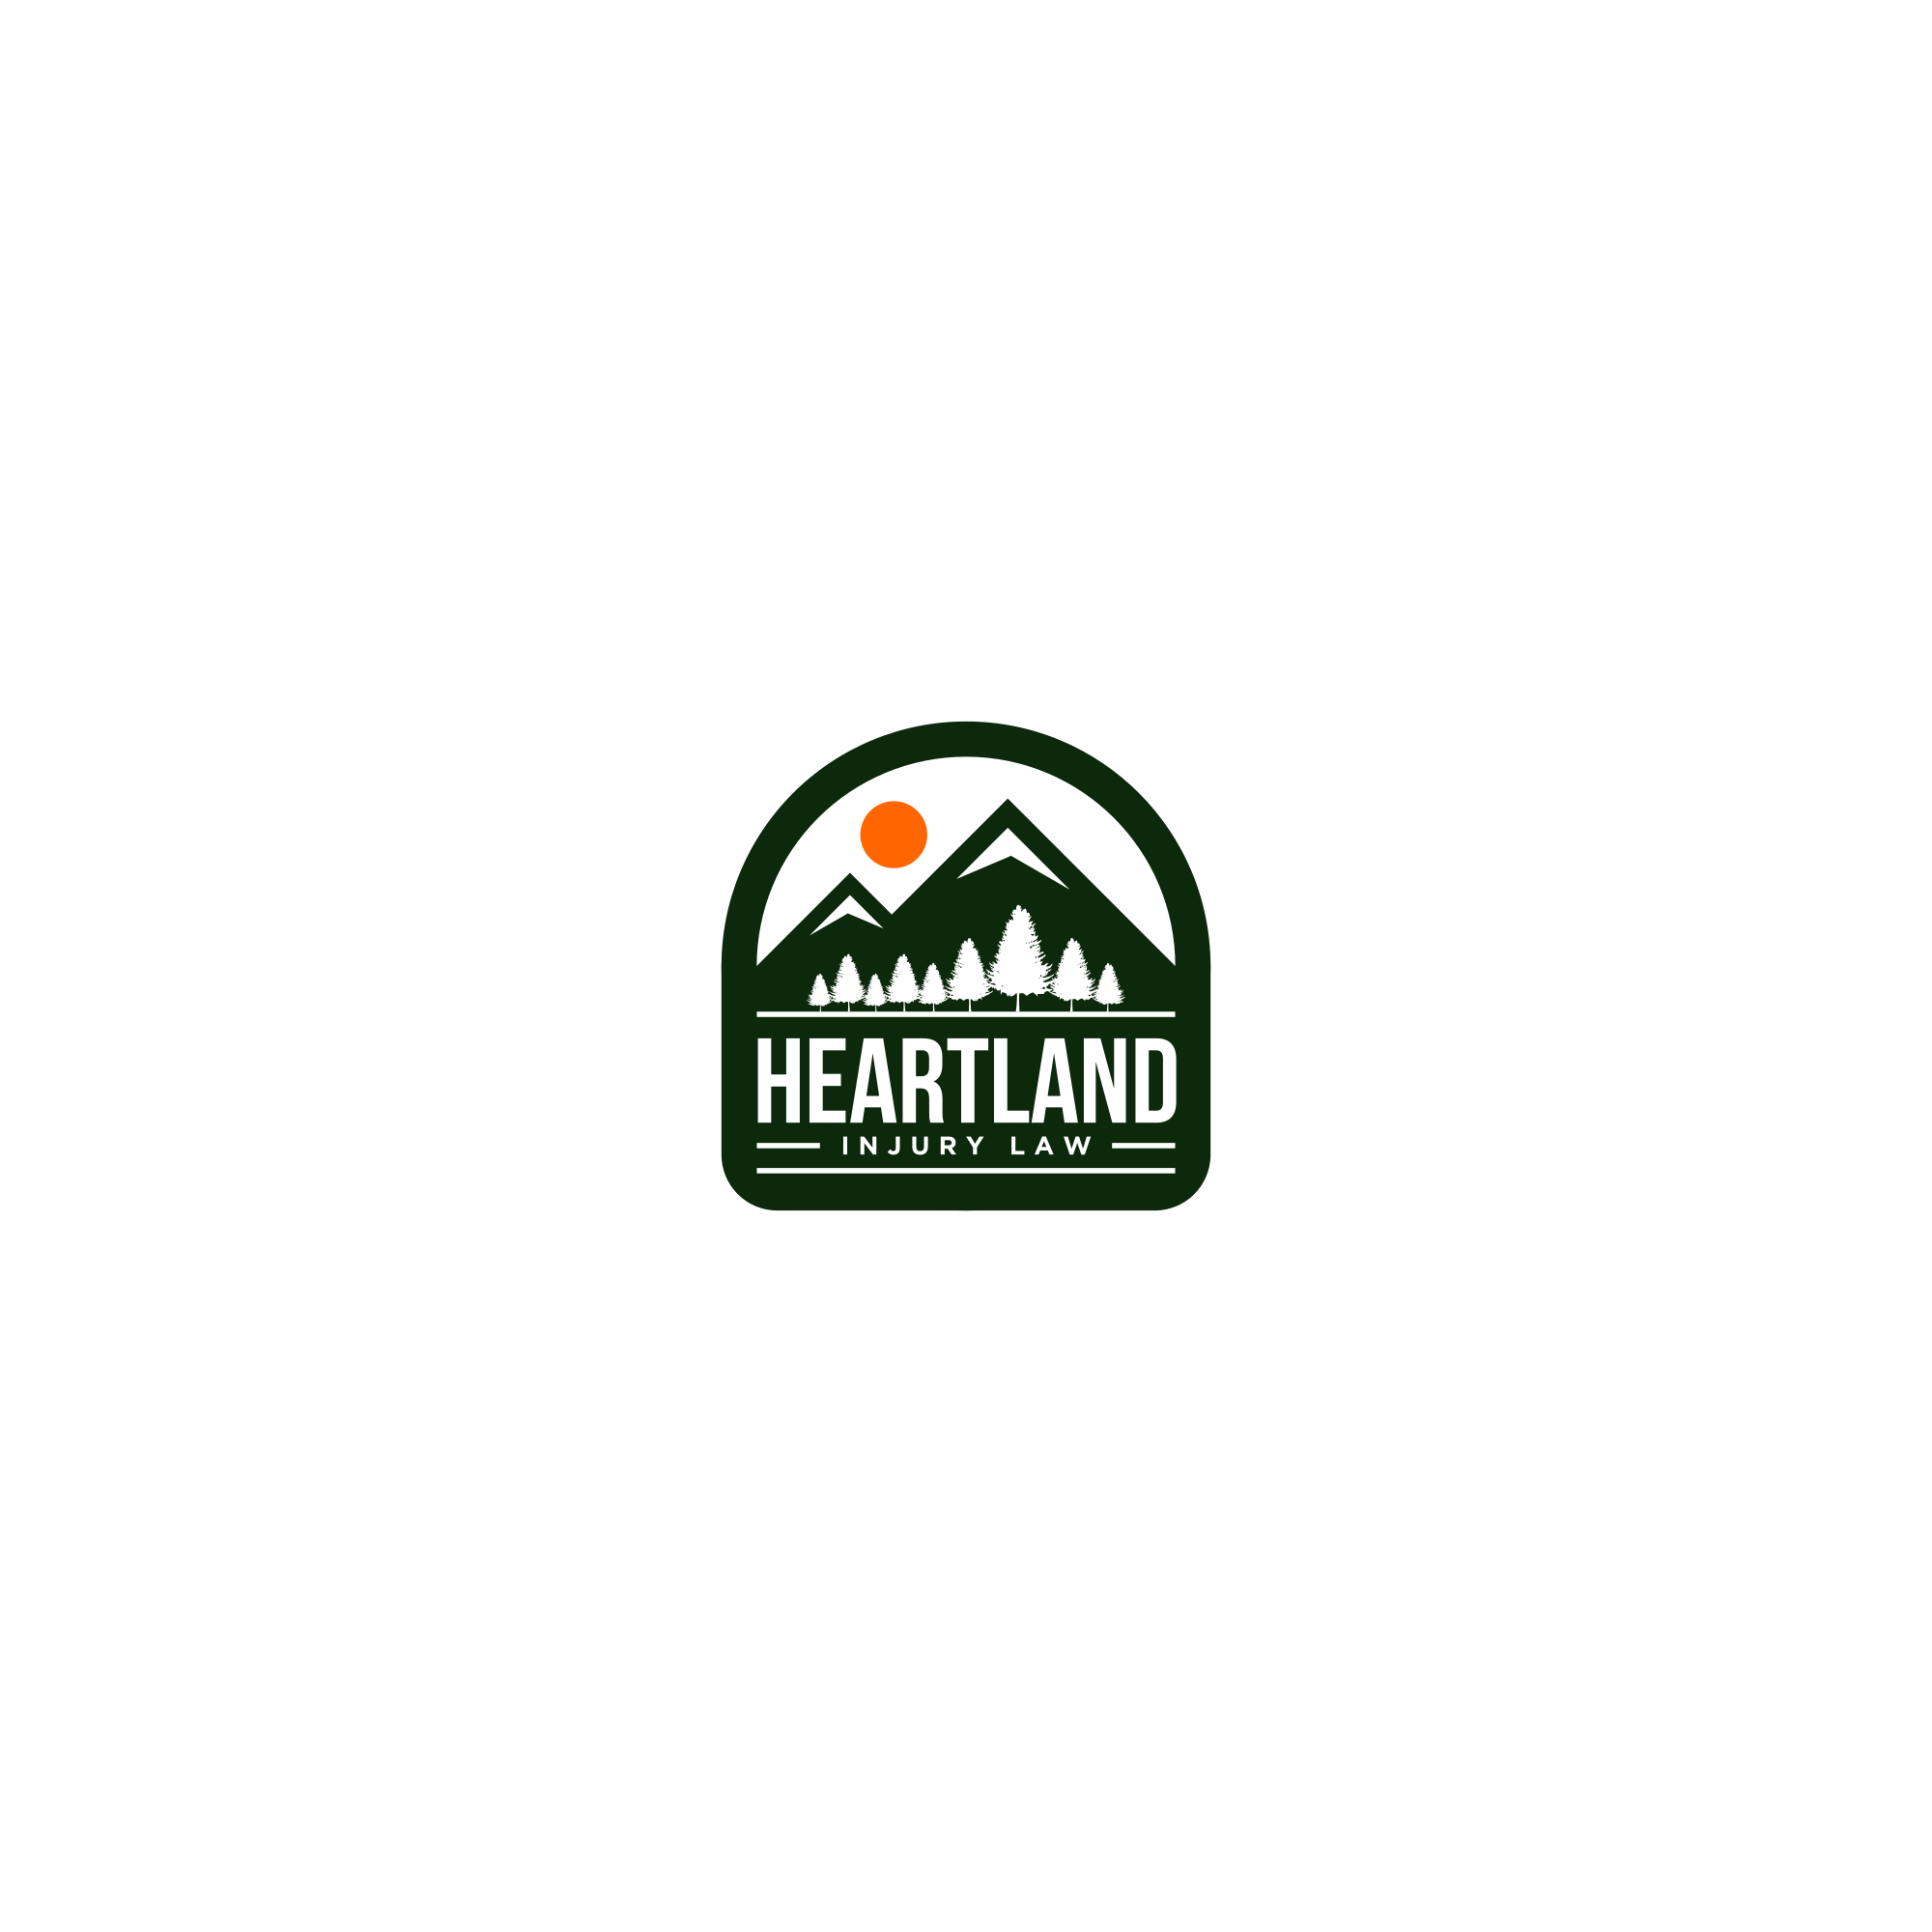 Heartland Injury Law - An Up North Cabin Type Logo For Attorney